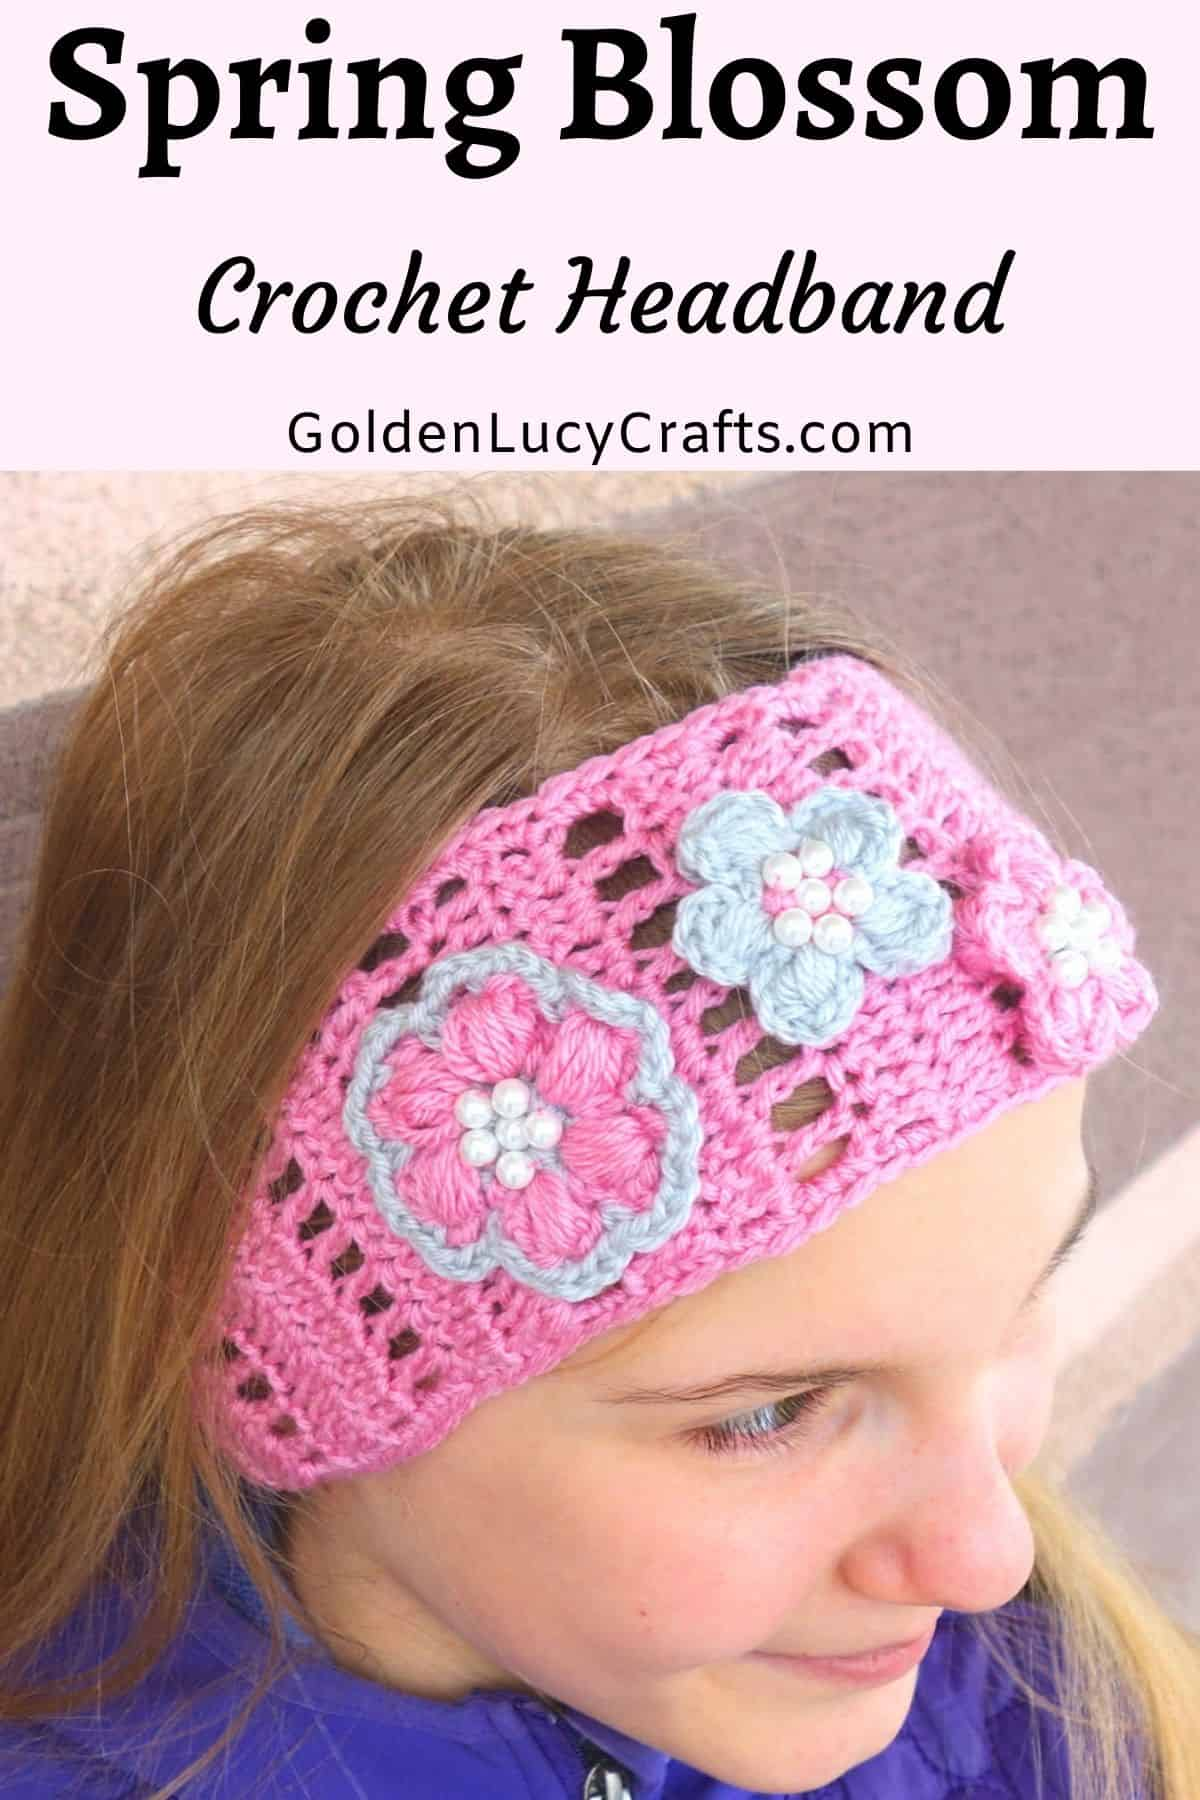 Young girl in pink crochet headband, text saying: Spring blossom crochet headband.